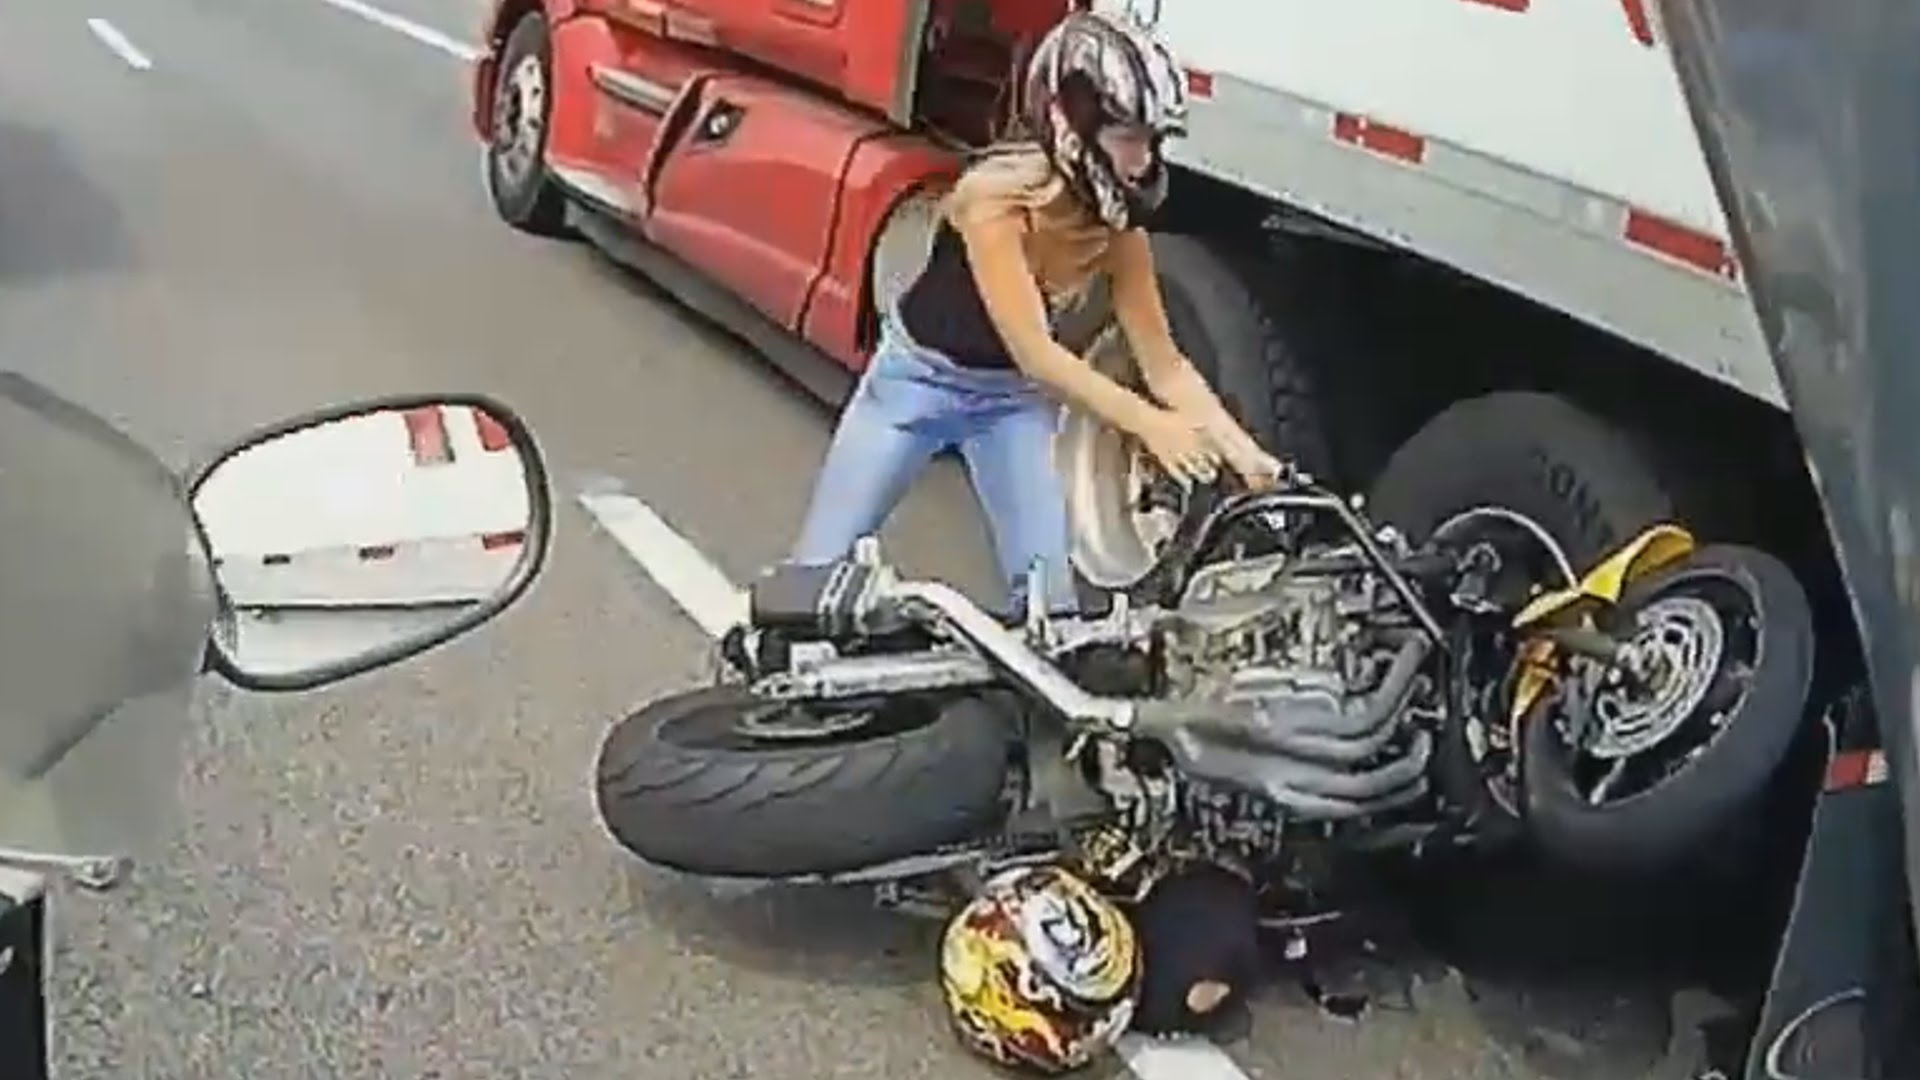 INSANE ACCIDENT: Motorcyclist Crashes & Gets Run Over By A Semi AND ...